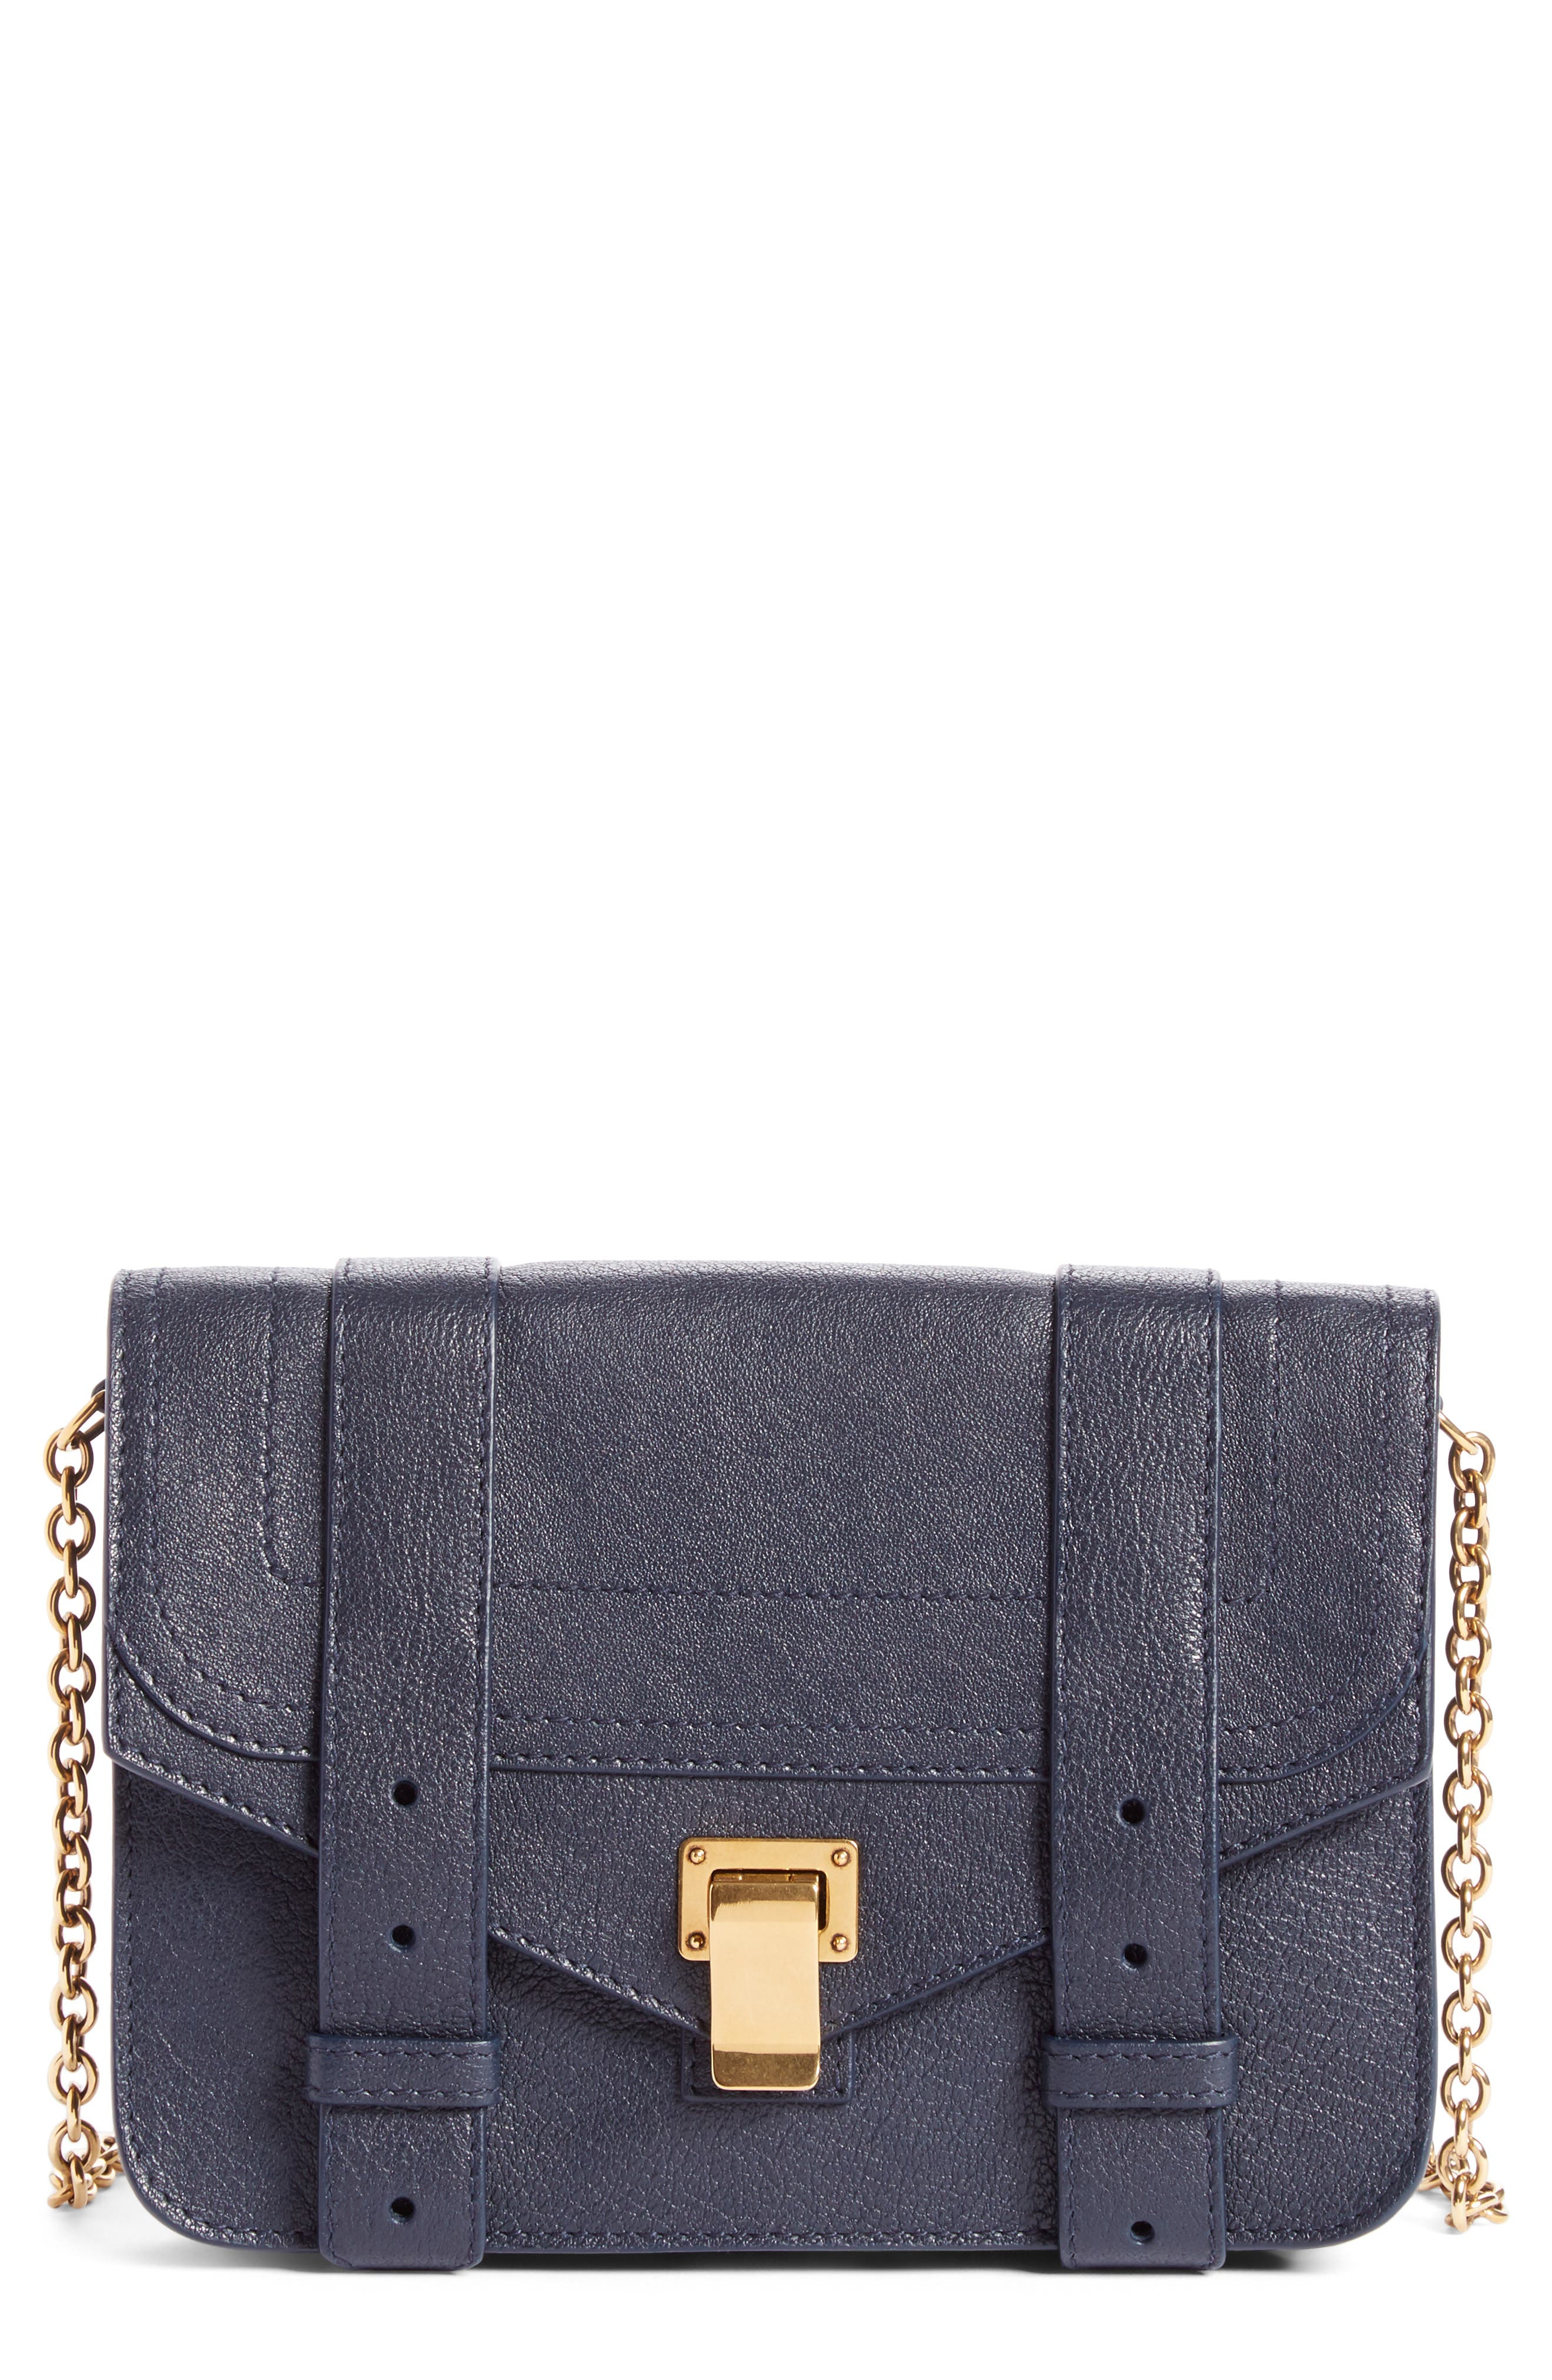 Alternate Image 1 Selected - Proenza Schouler PS1 Lambskin Leather Chain Wallet